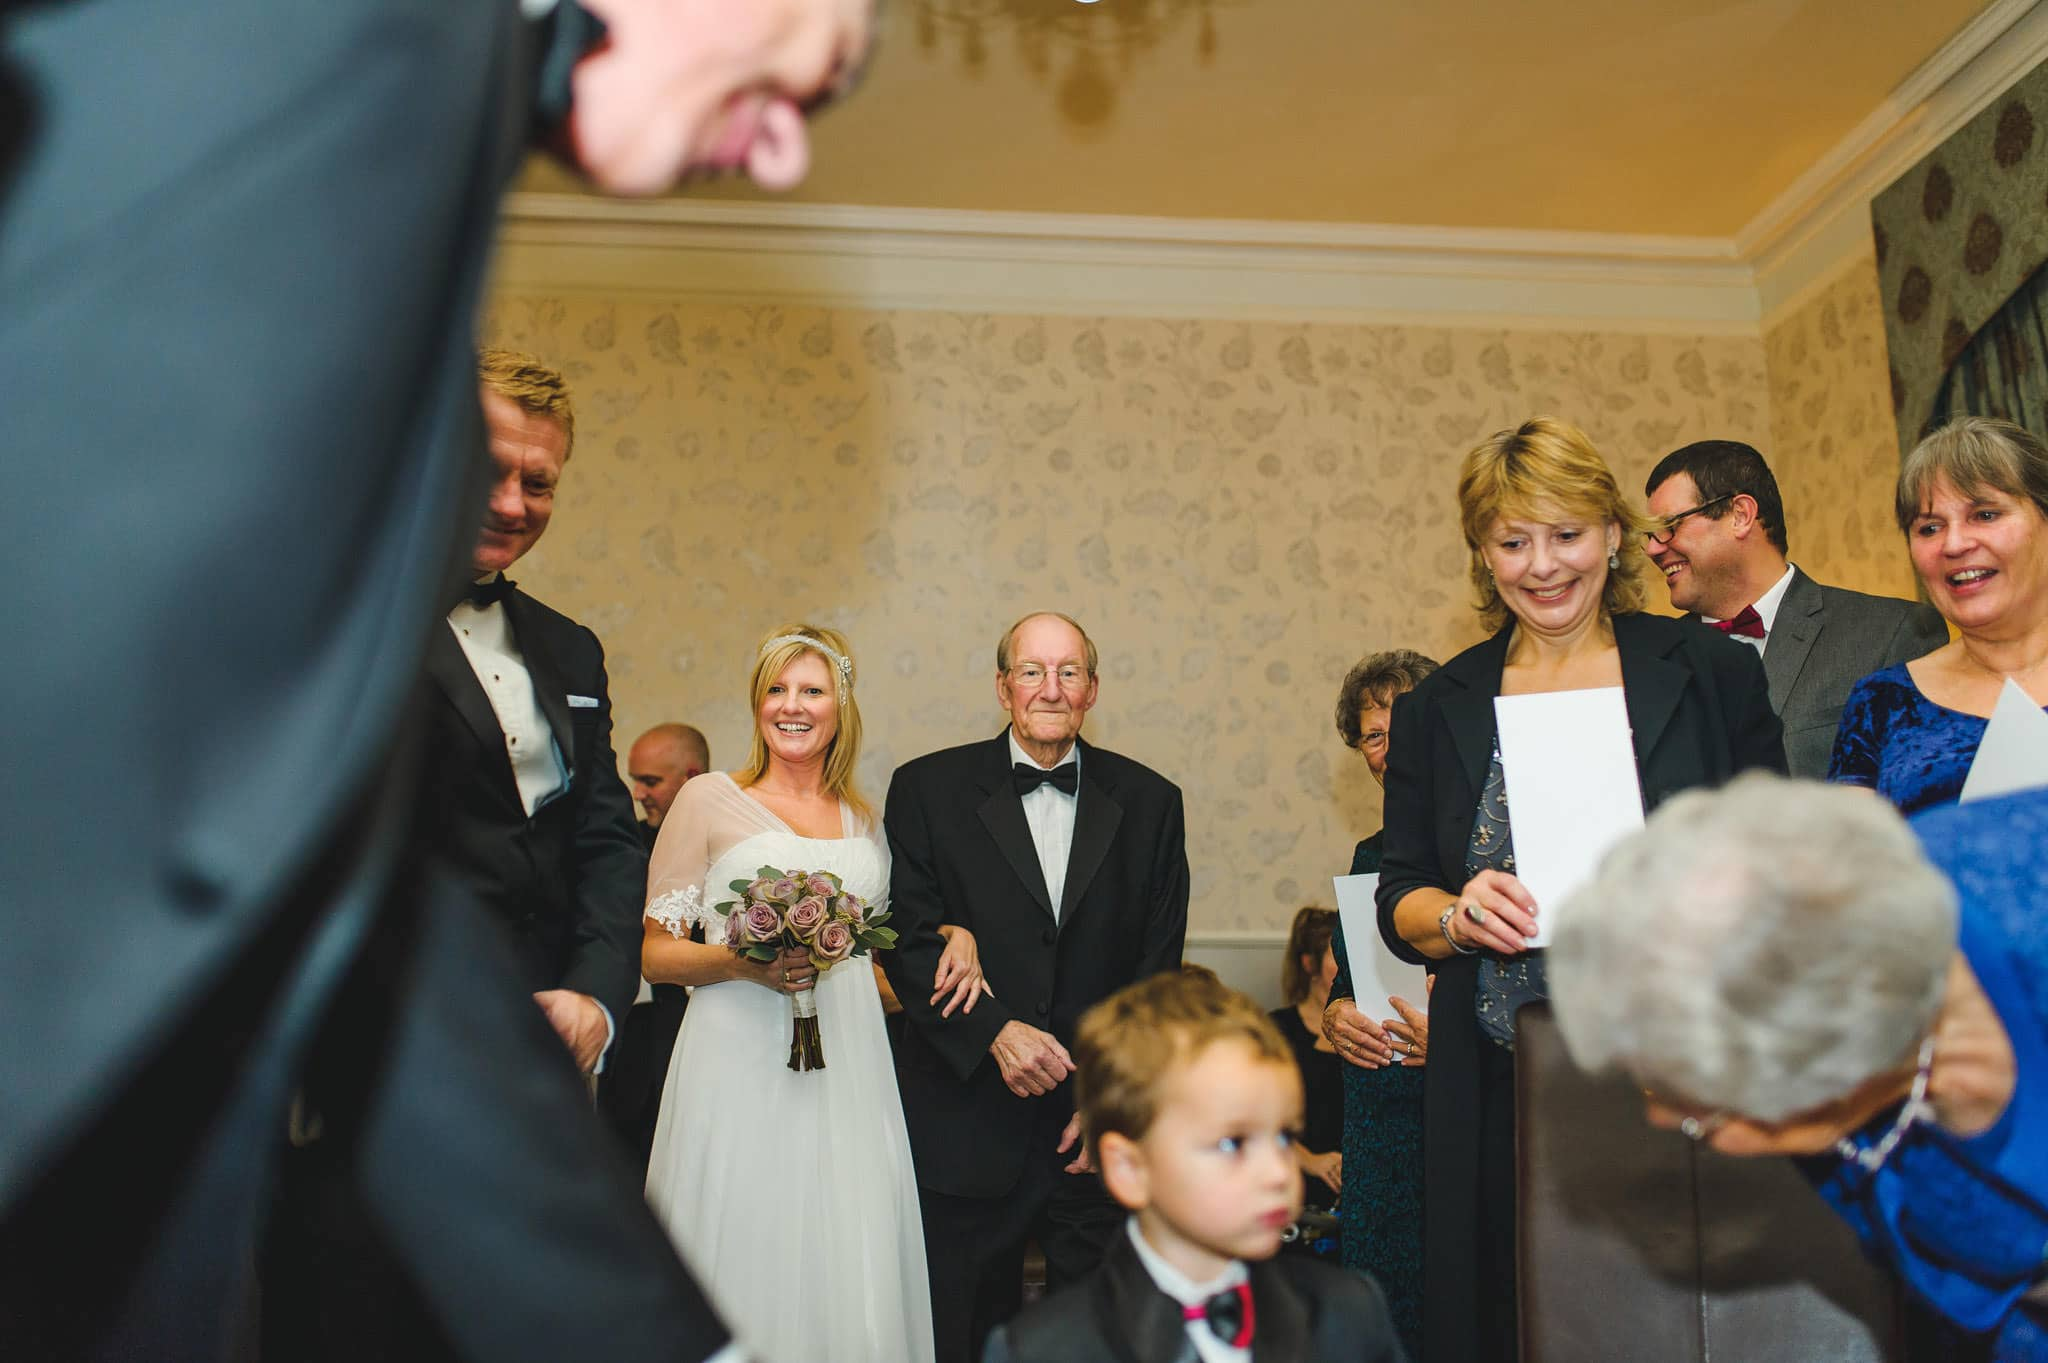 wedding photography west midlands 40 - Wedding photography West Midlands | Claire + Stephen